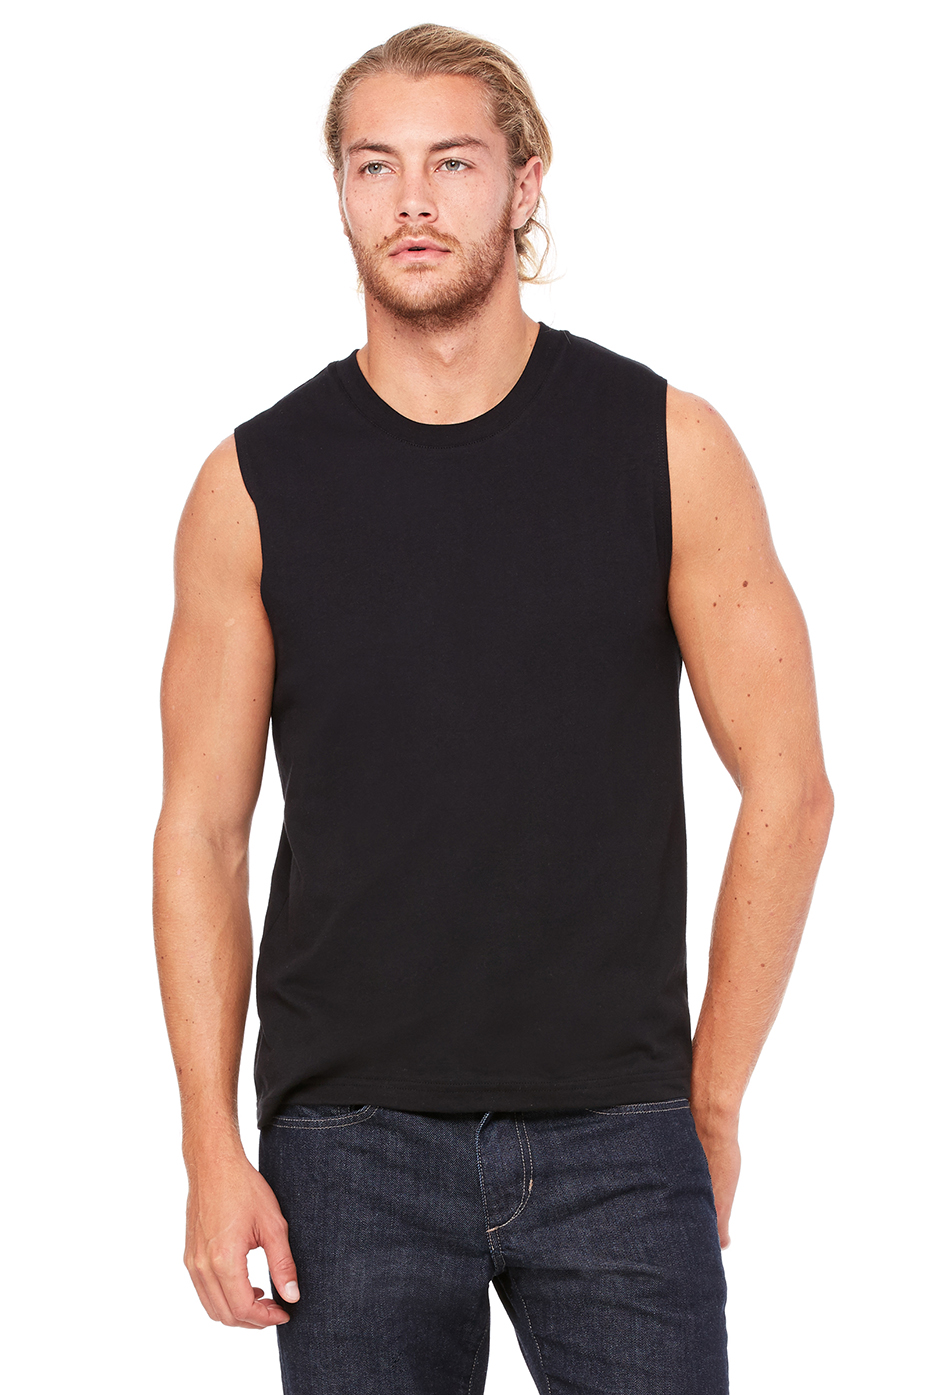 The Fruit of the Loom® Select Men's Muscle t-shirt is designed with premium Eversoft® ring spun cotton, and now features our NEW Dual Defense™ technology, providing wicking and odor protection.